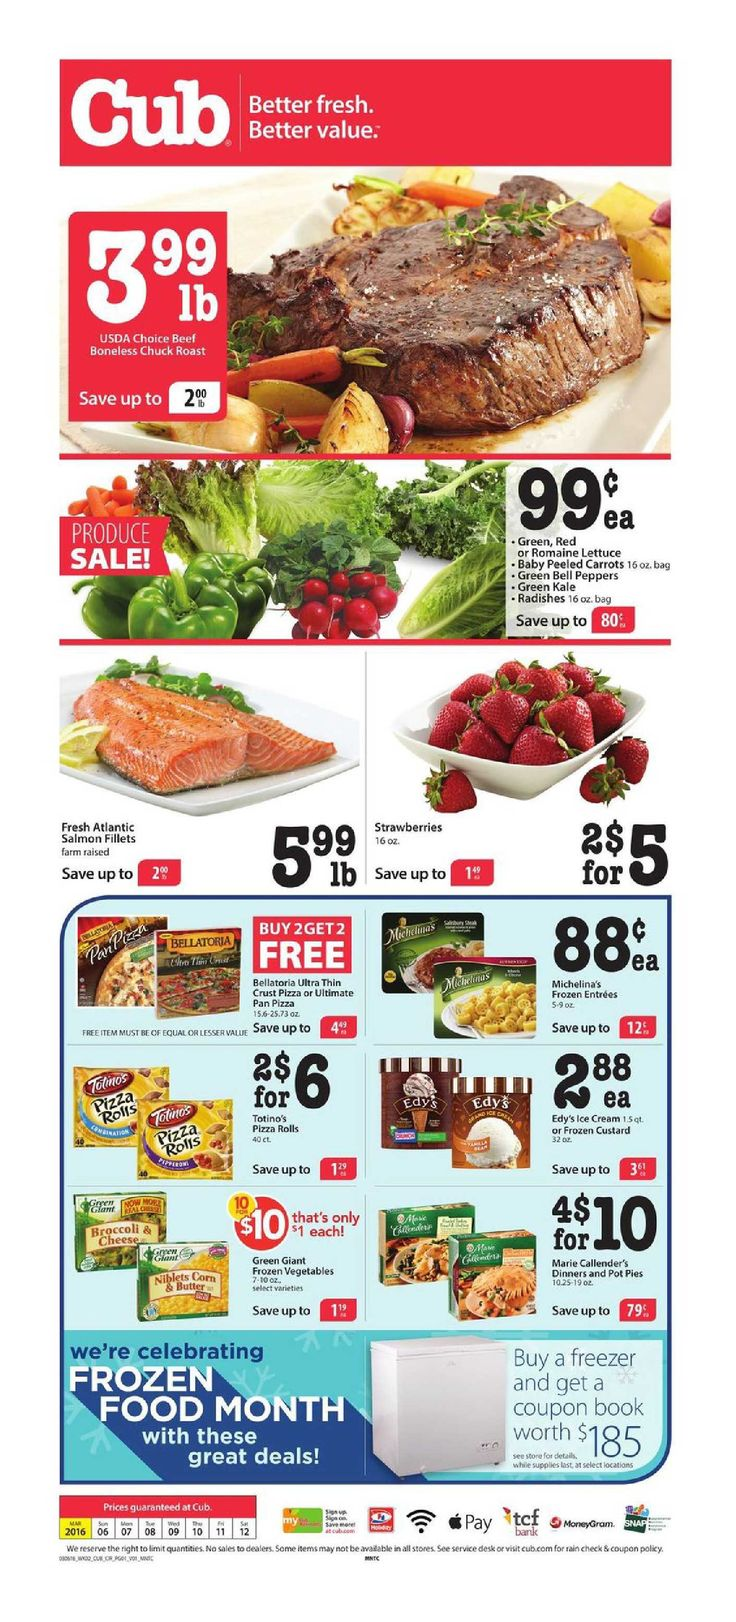 Cub Foods Weekly Ad May 22 - 28, 2016 - http://www.olcatalog.com/grocery/cub-foods-weekly-ad.html